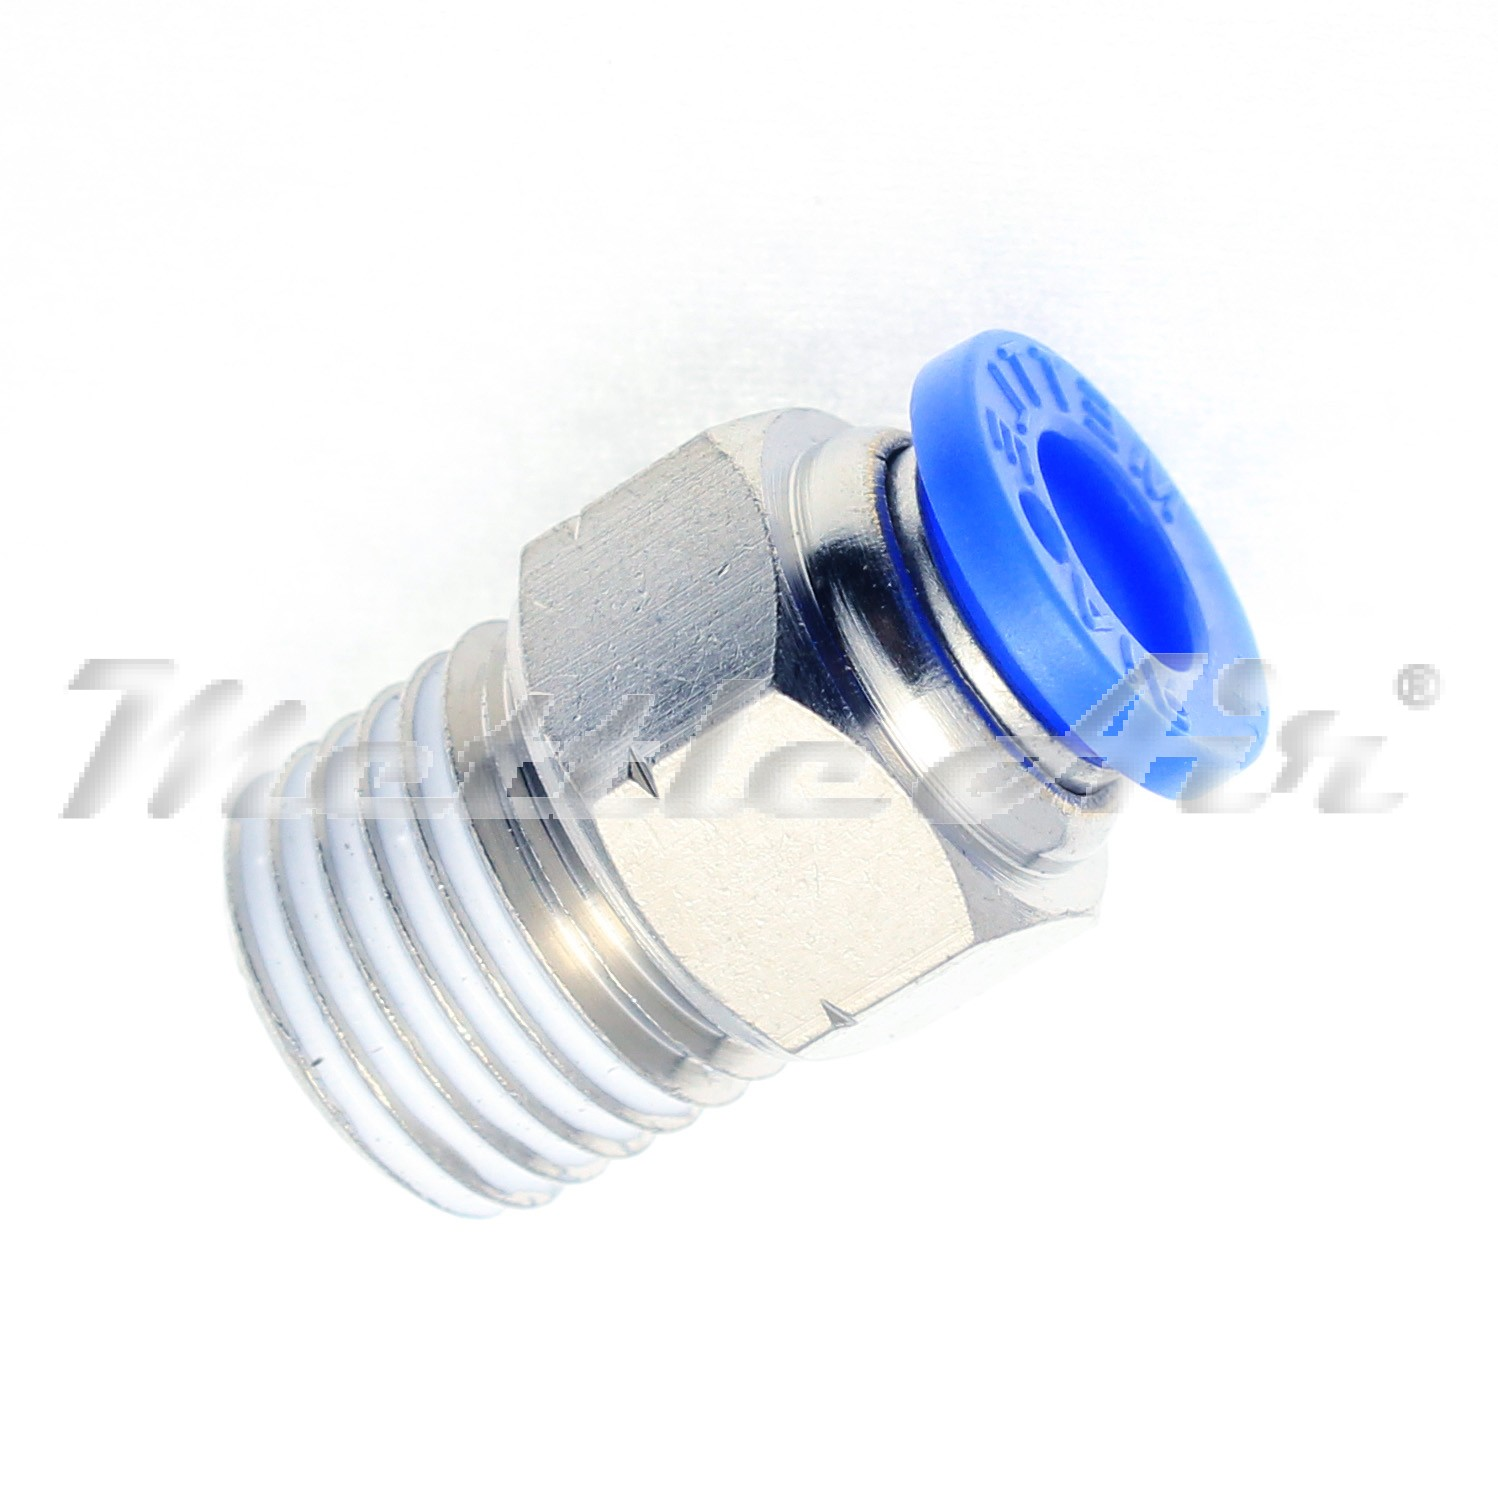 10 Pieces pneumatic 1//4 Tube x 1//8 NPT Swivel L push to connect fitting